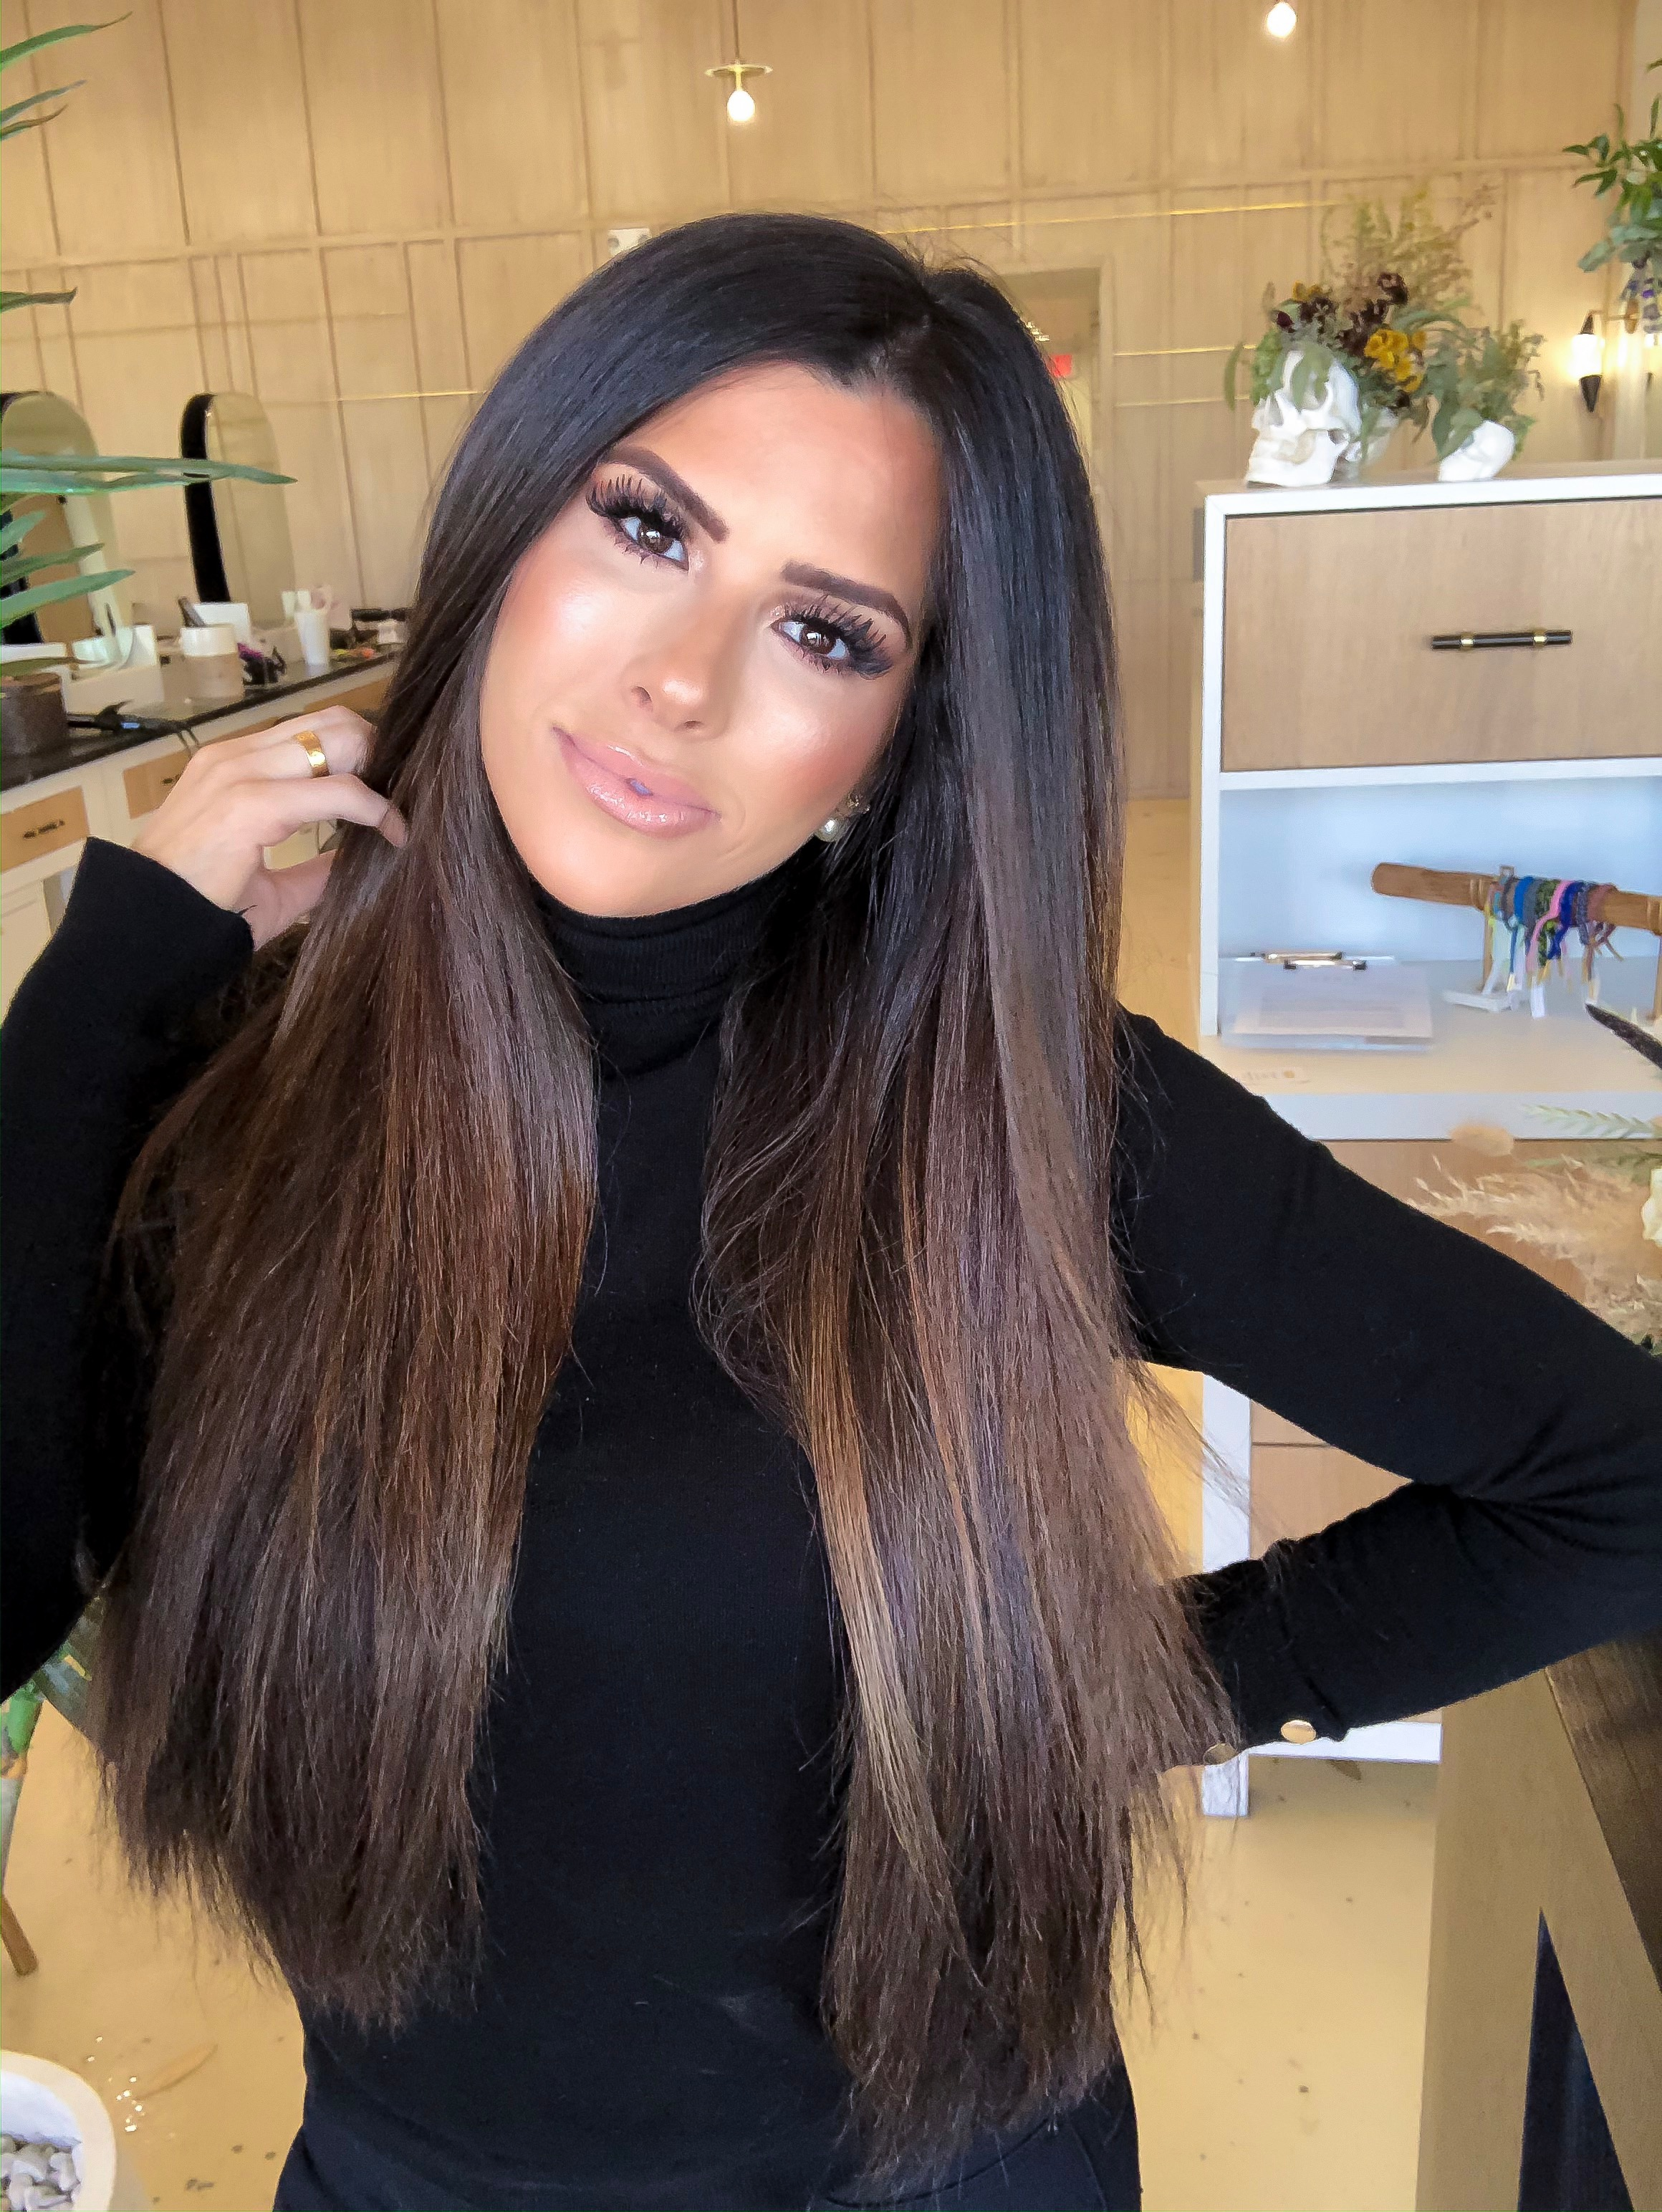 emily gemma hair extensions, straight hair brunette balayage, hair by chrissy |  BEST HAIR PRODUCTS FOR 2019💁🏻‍♀️ || PART 1 by popular US beauty blog, The Sweetest Thing: image of a woman with brunette hair extensions.